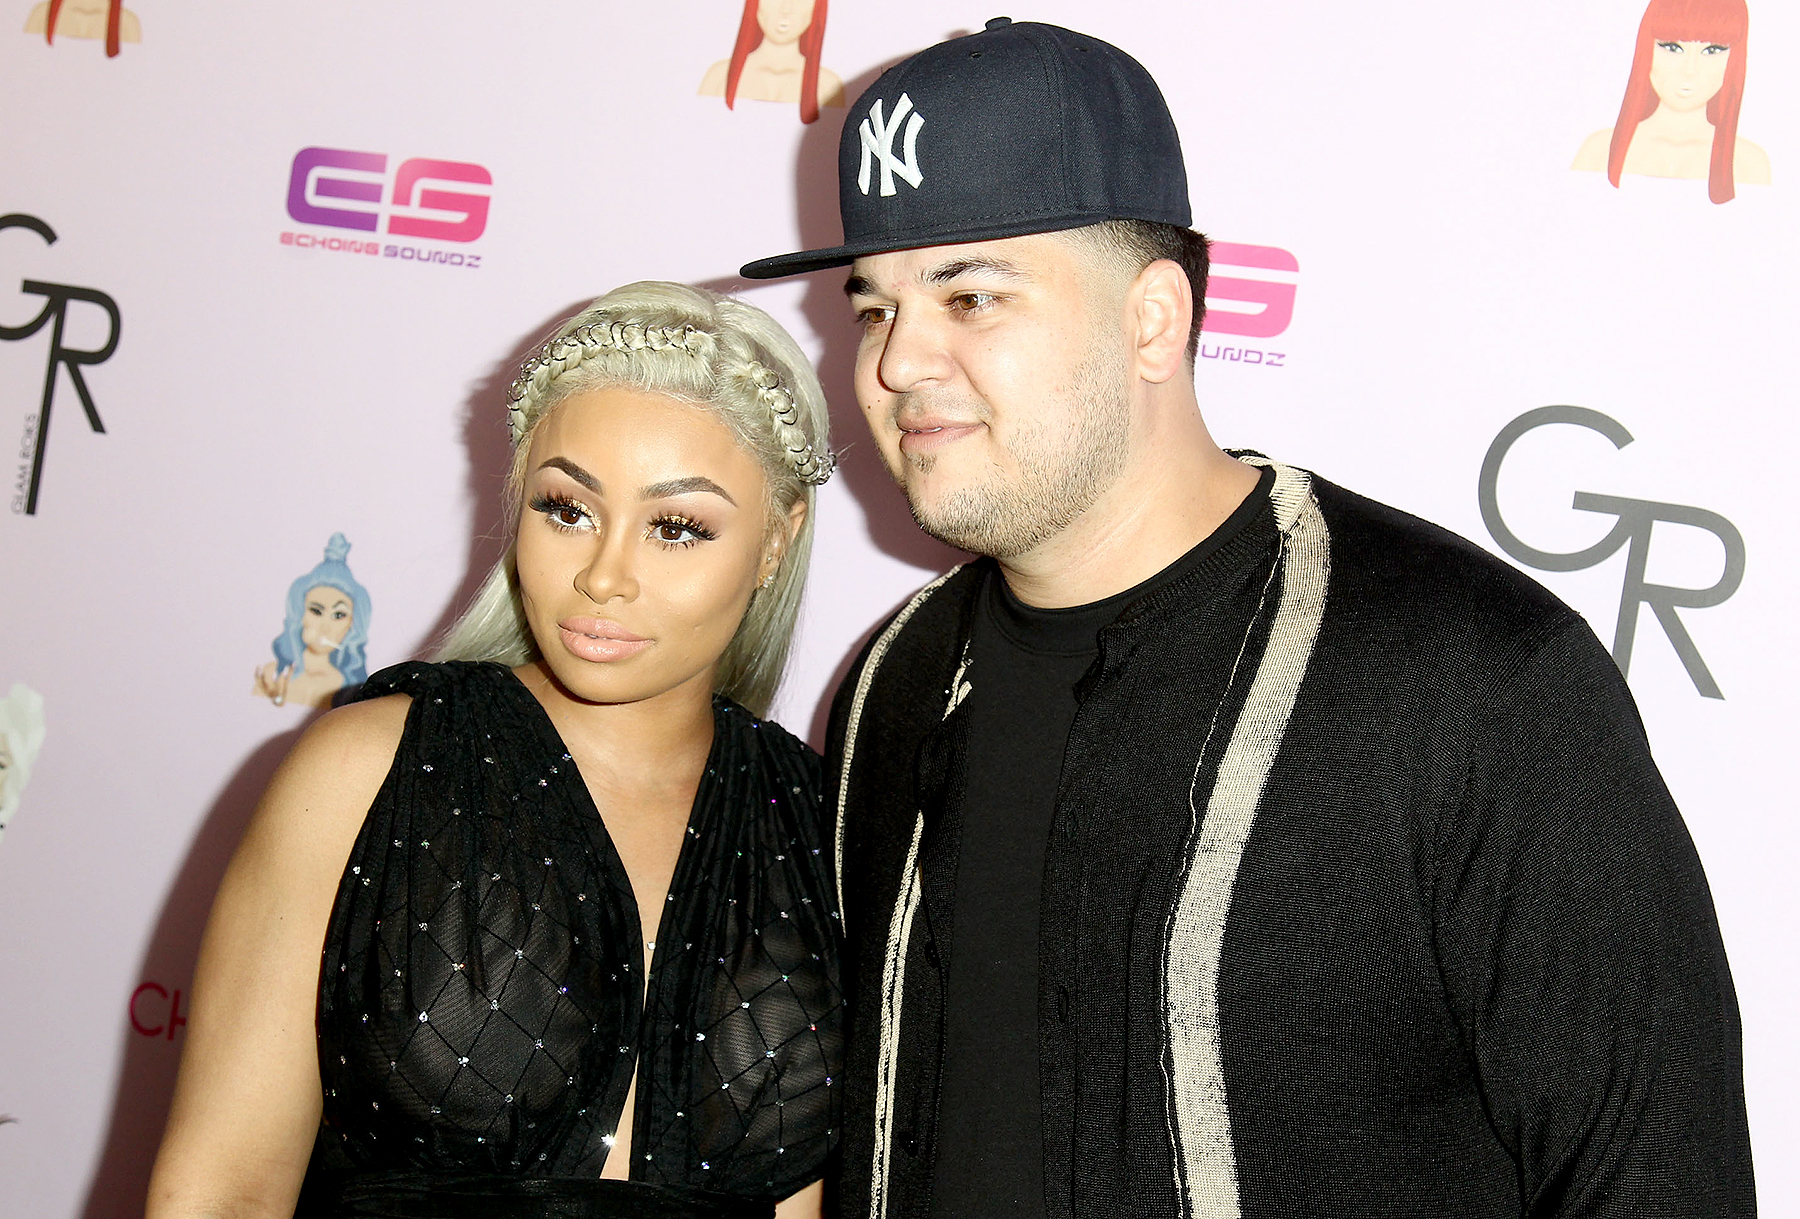 Blac Chyna and Rob Kardashian attend a birthday celebration and unveiling of her 'Chymoji' Emoji collection at Hard Rock Cafe in Hollywood on May 10, 2016.